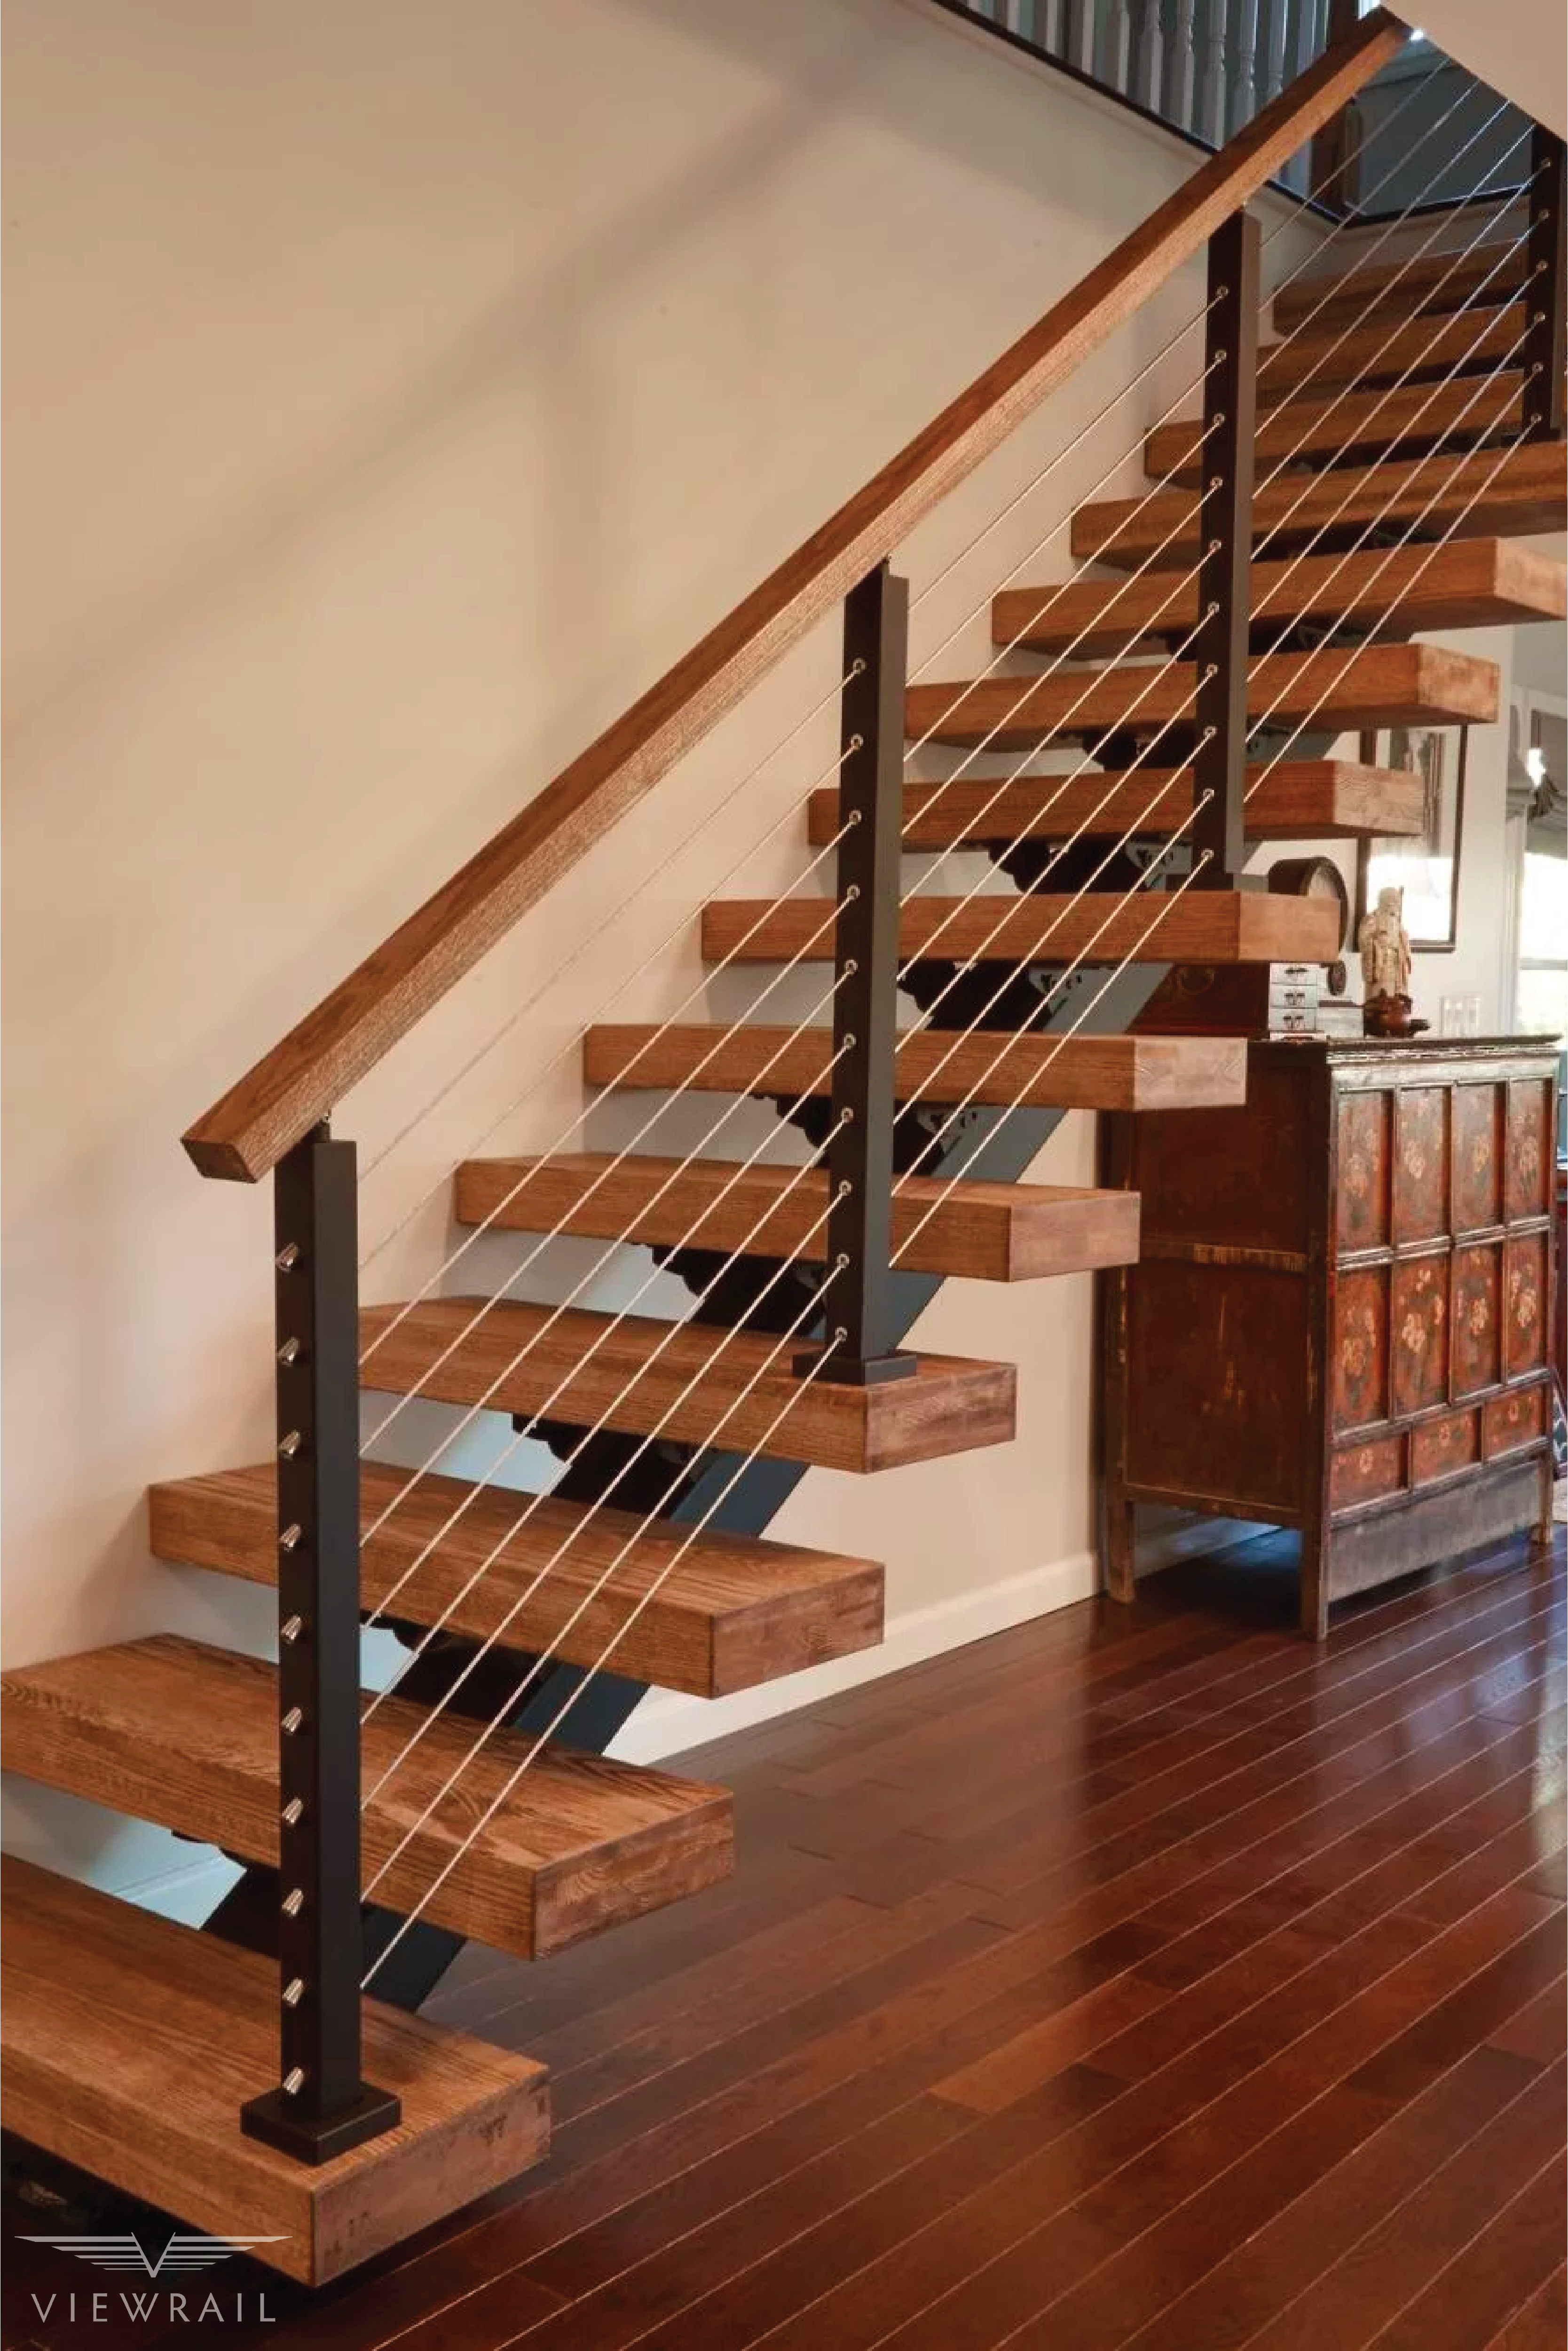 Floating Stair DIY Install #floatingstairs This New York FLIGHT features a custom stringer, quarter-sawn clear-coated white oak treads, and black aluminum cable railing posts. The homeowner was able to install the project by himself with the help of a friend, proving once again that with FLIGHT floating stairs, quality and DIY aren't mutually exclusive. #design #interiordesign #DIY #renovation #Viewrail #ViewrailFLIGHT #FloatingStairs #FloatingStaircase #stairs #staircase #architecture #cabler